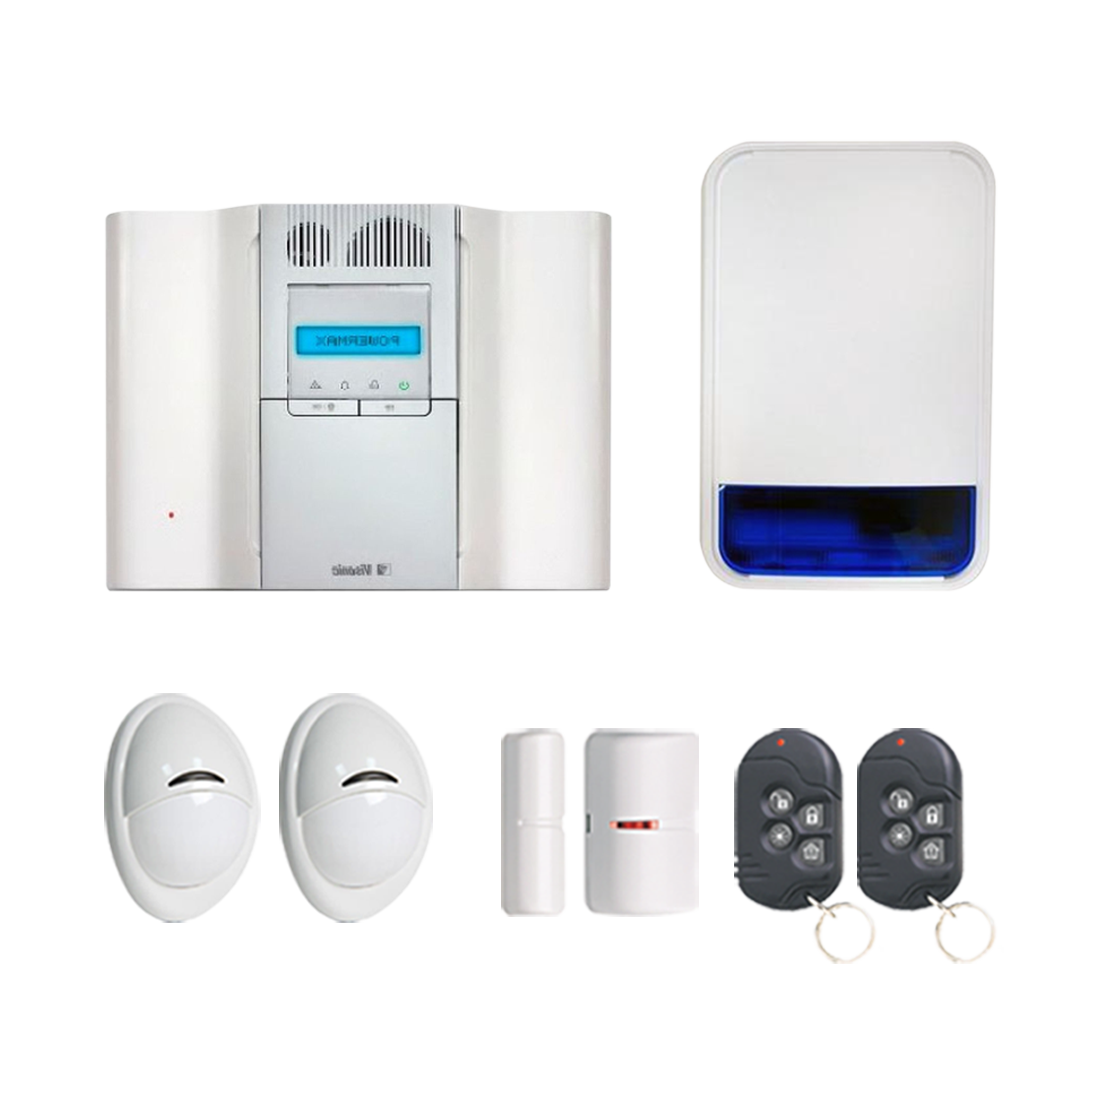 Visonic PowerMax Wireless Alarms